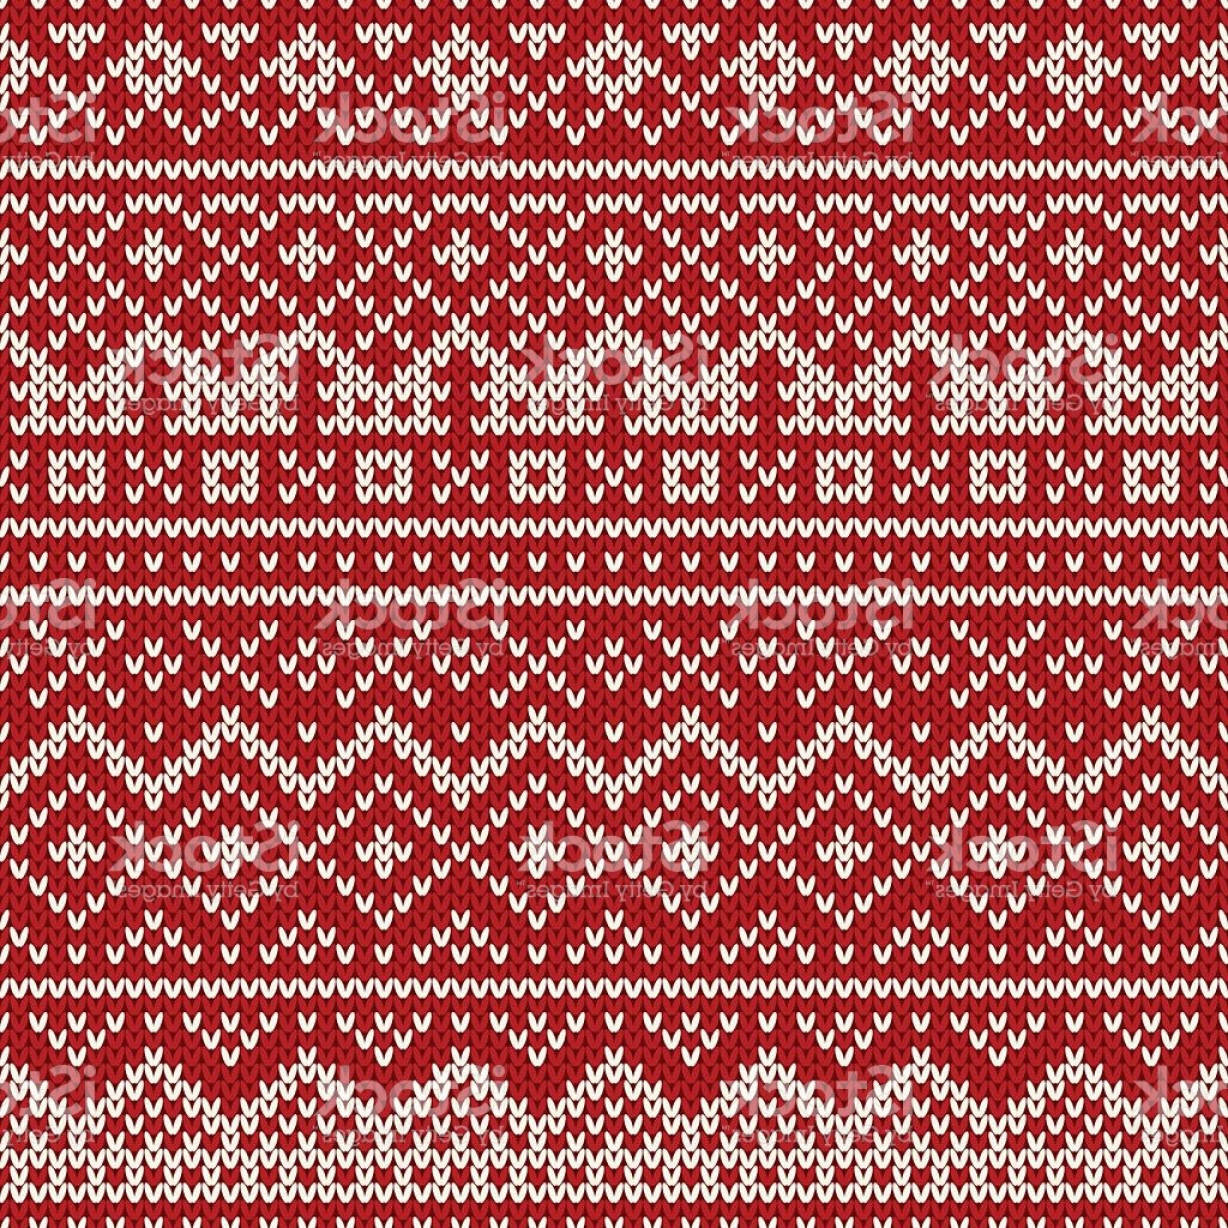 Christmas Sweater Design Vector: Christmas Sweater Design Seamless Holiday Knitted Pattern Gm